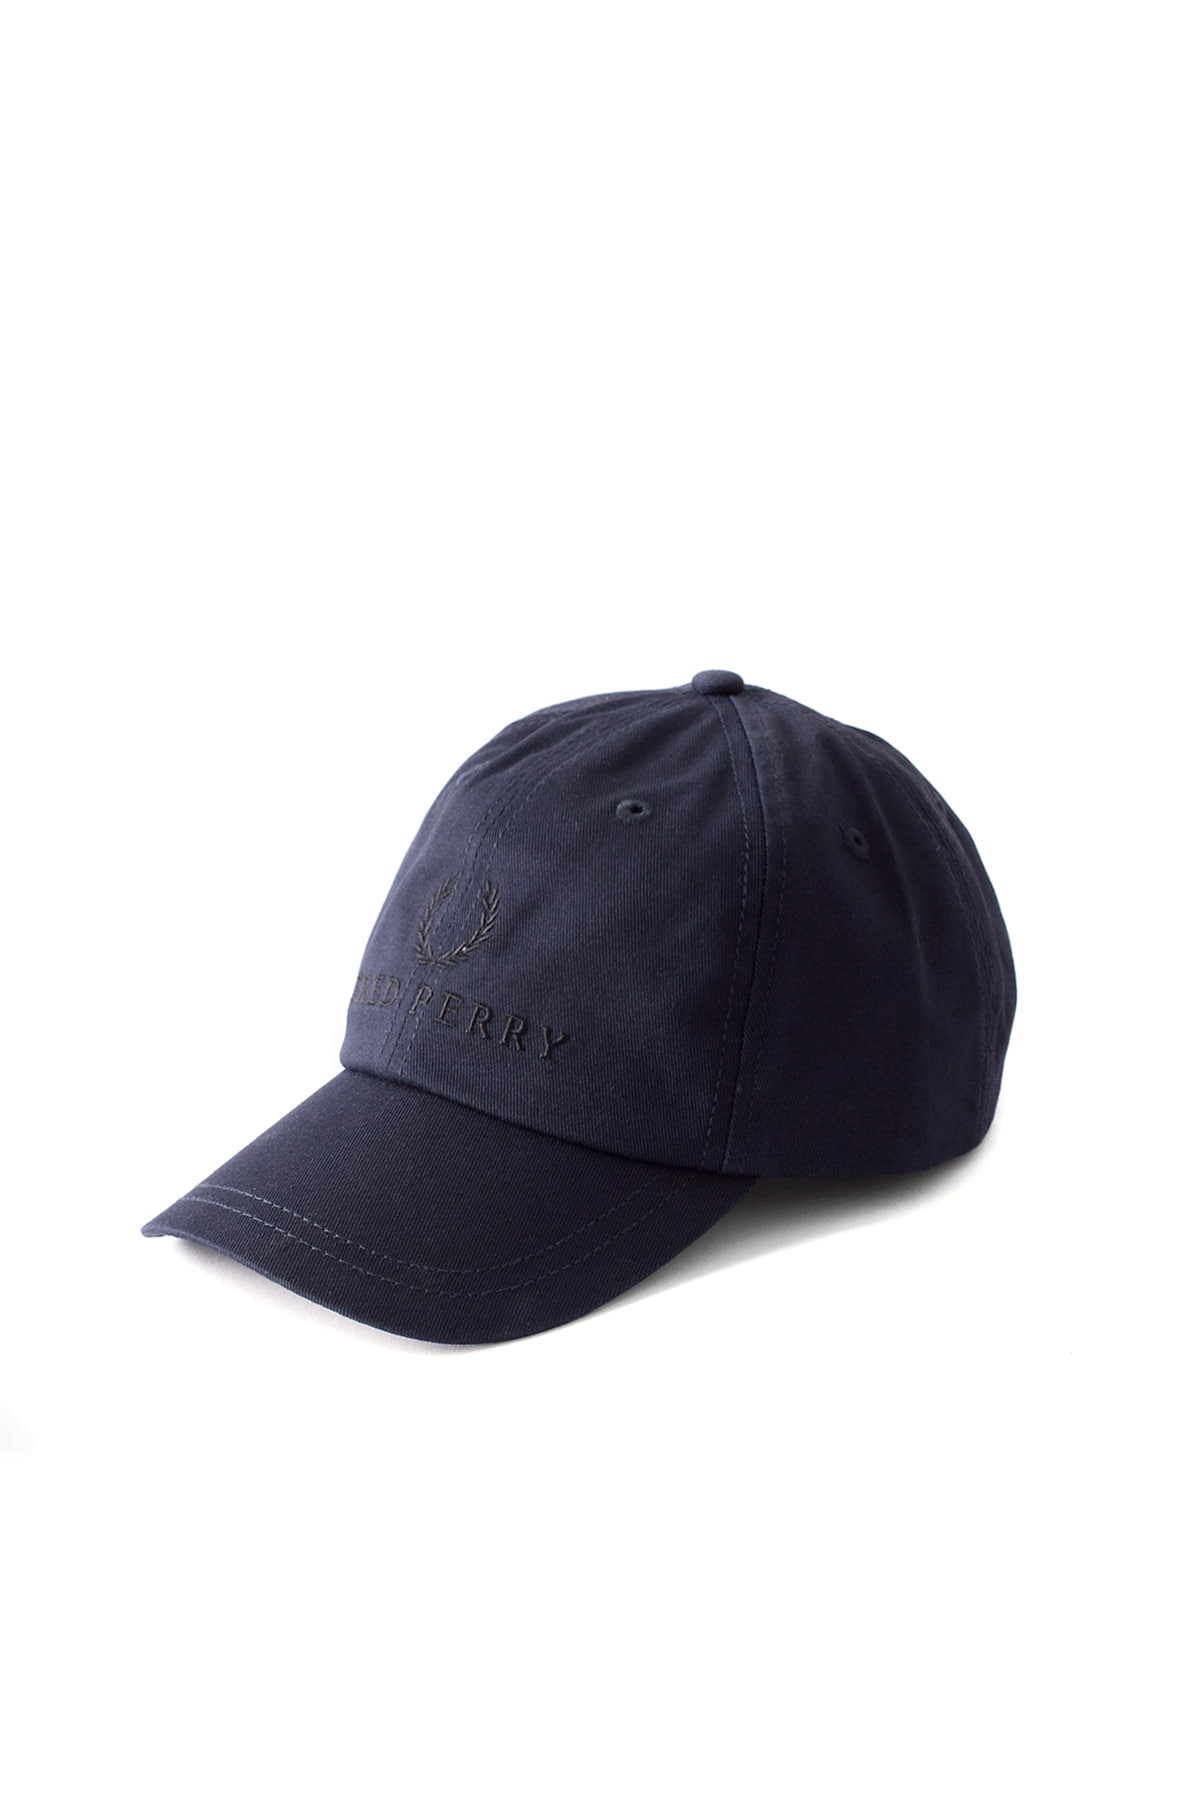 FRED PERRY : Fred Perry Tennis Cap (Washed Navy)